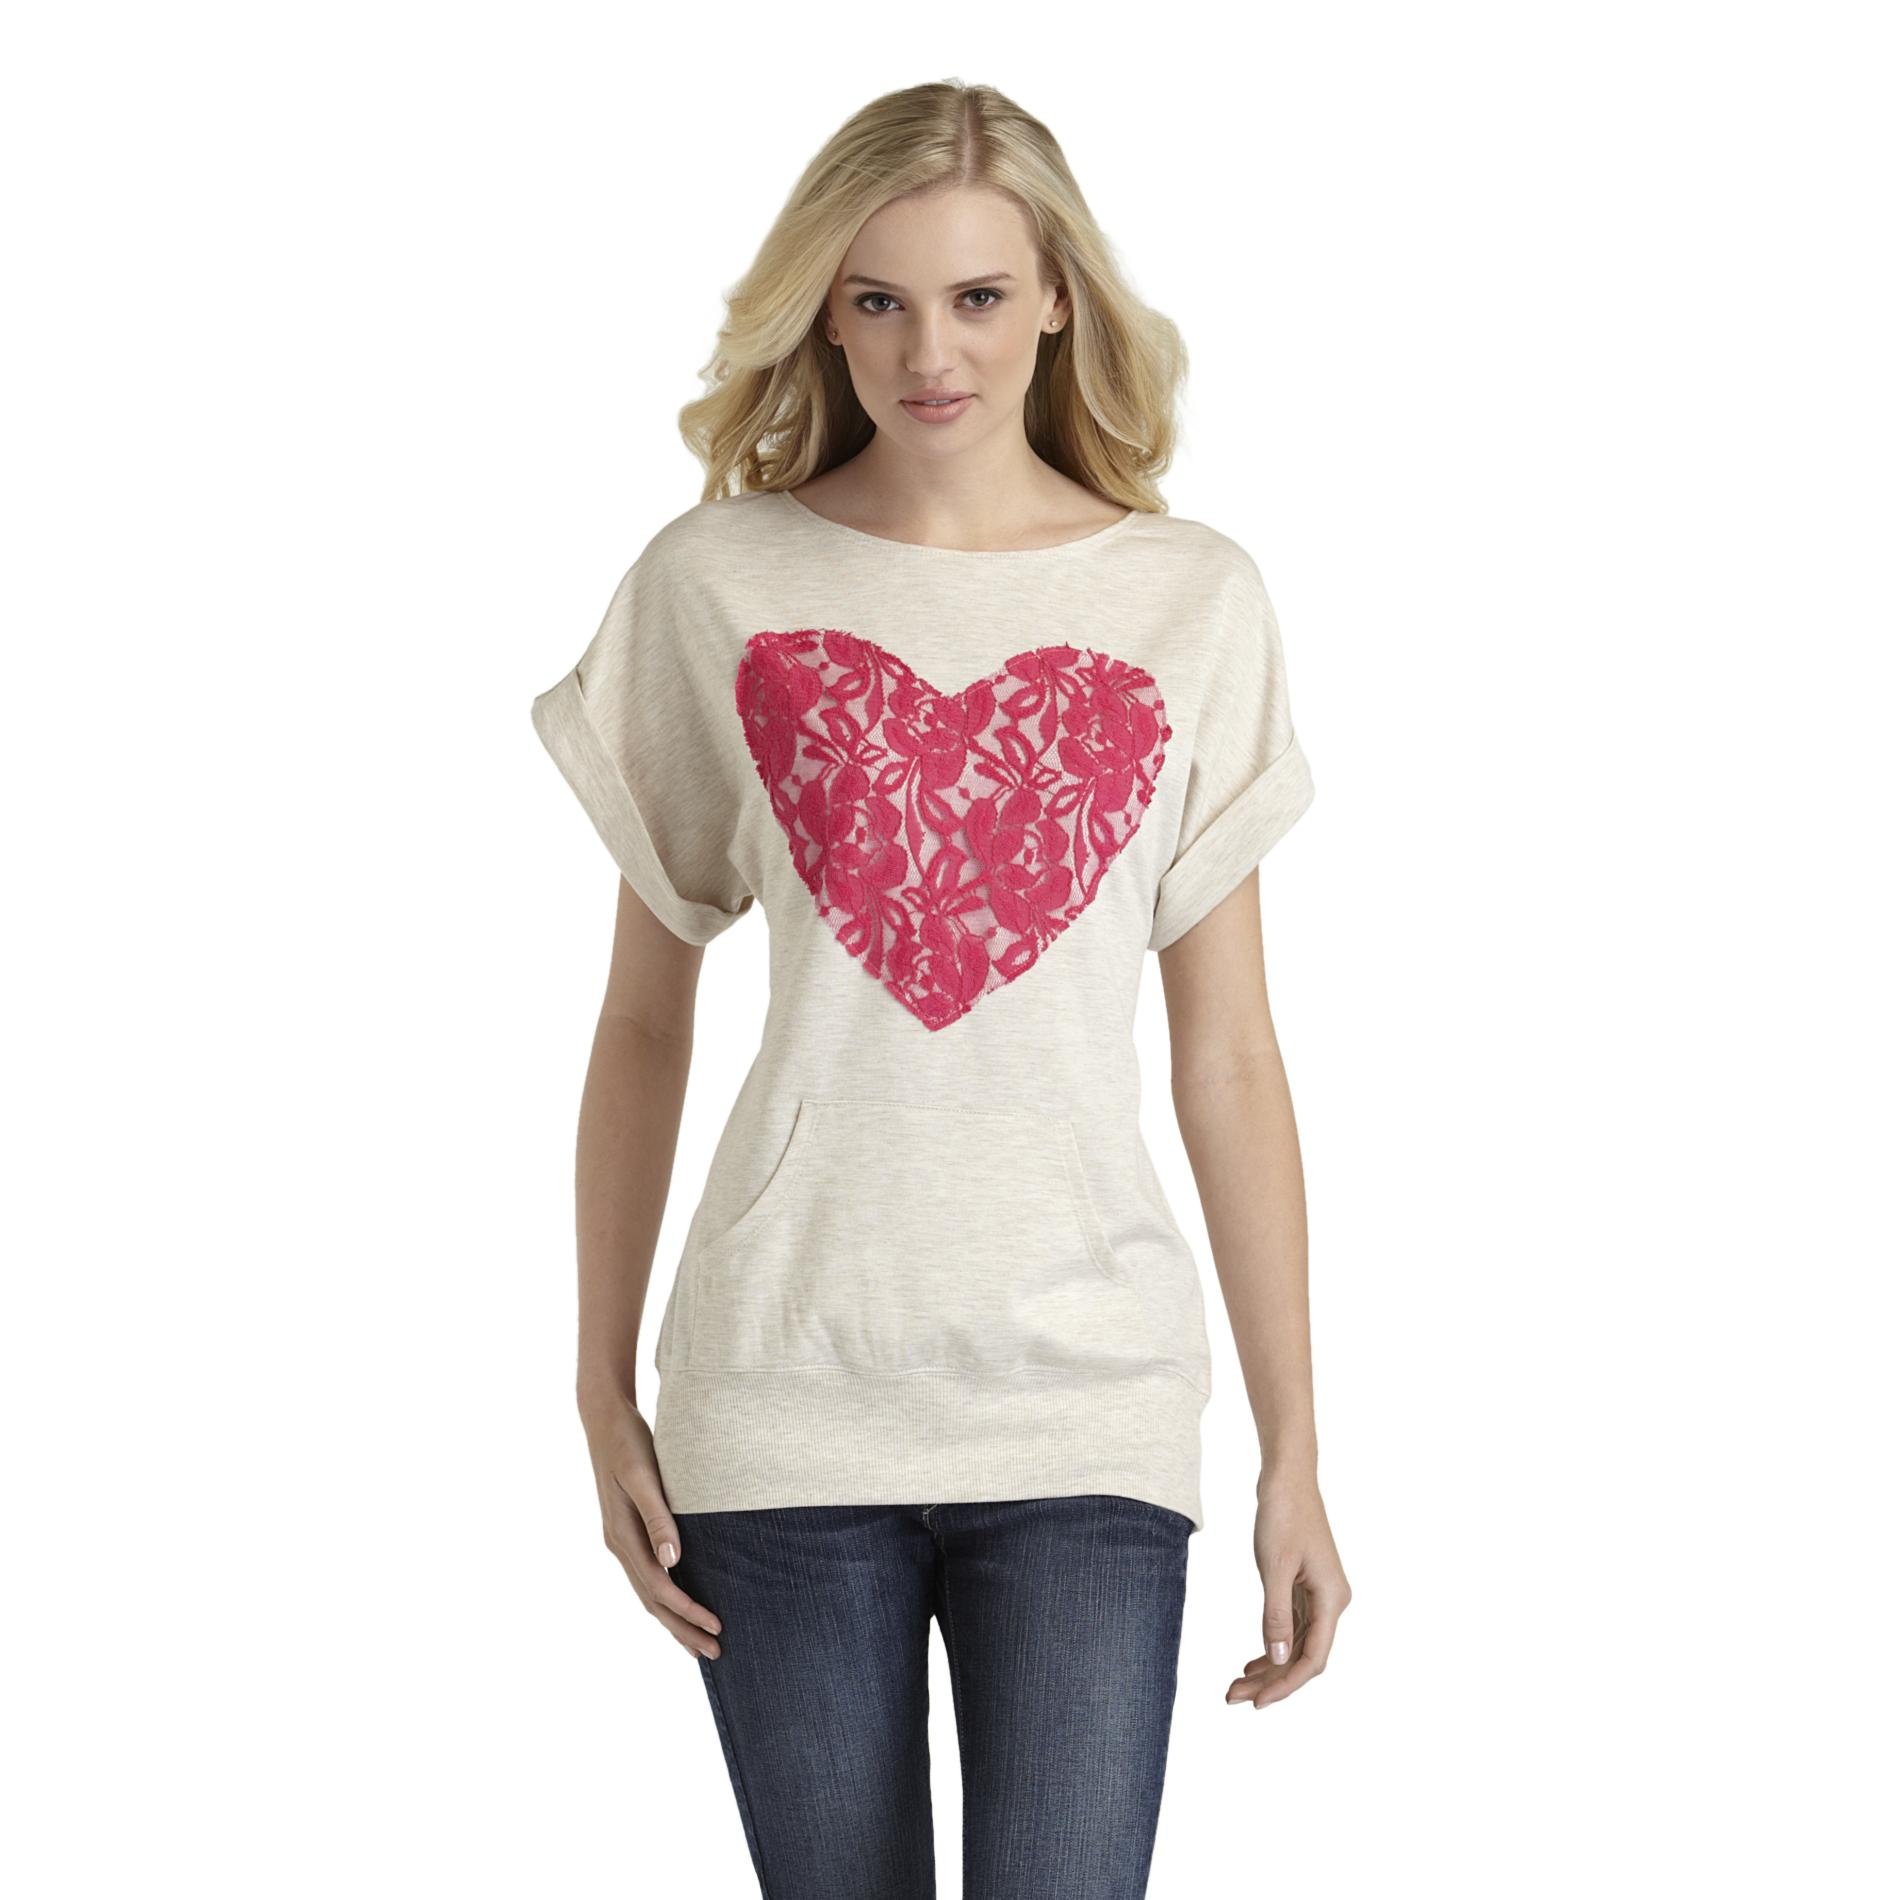 Joe by Joe Boxer Women's Tabbed-Sleeve Sweatshirt - Heart at Sears.com